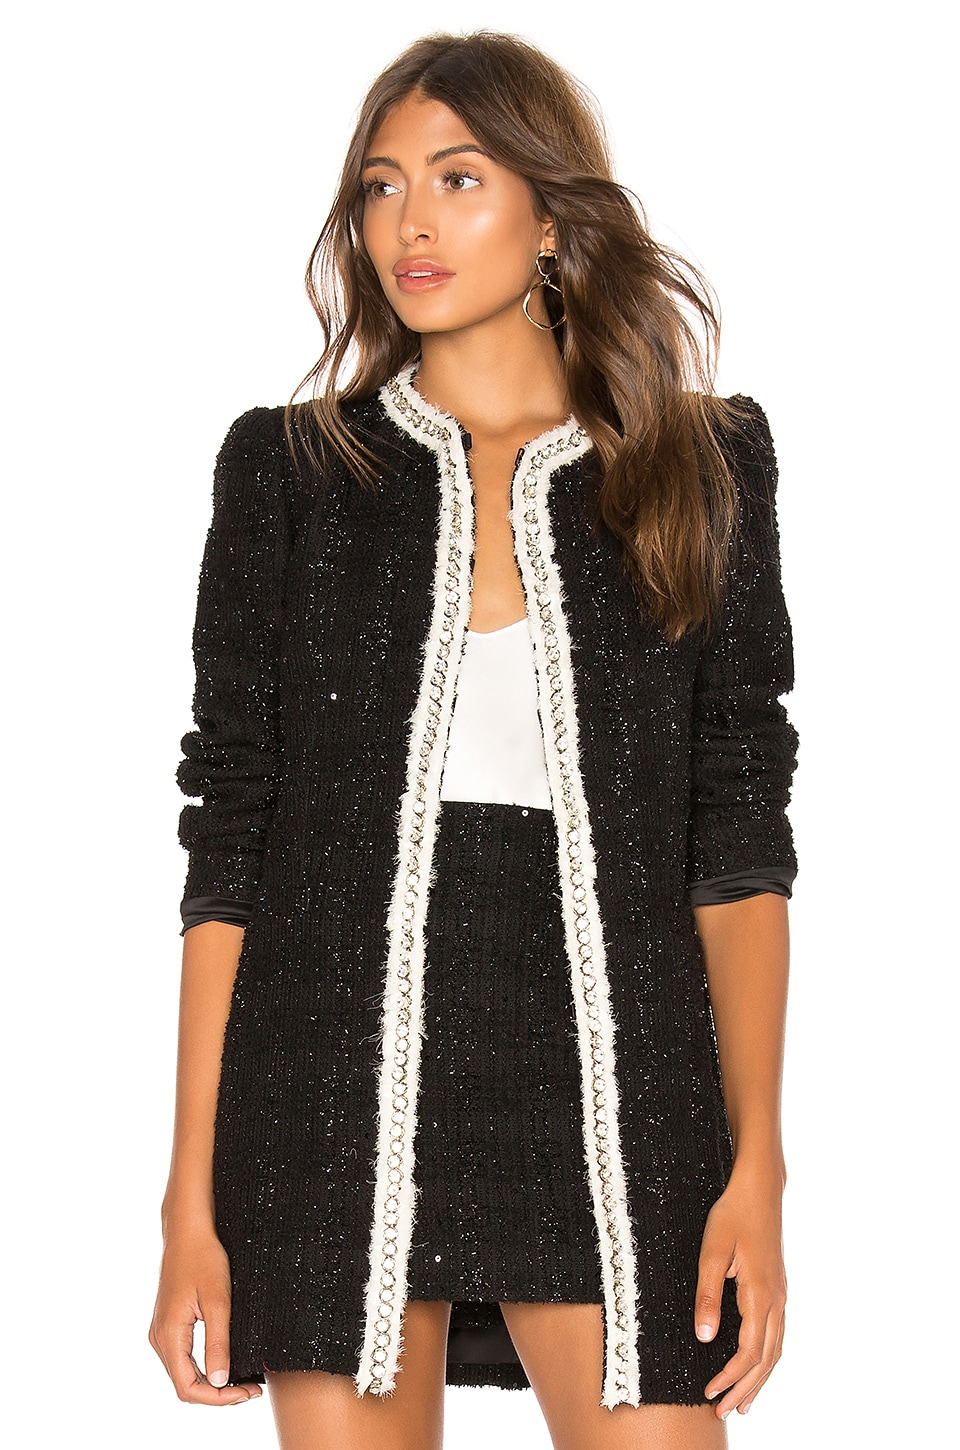 Alice + Olivia Andreas Midnight Jacket in A002